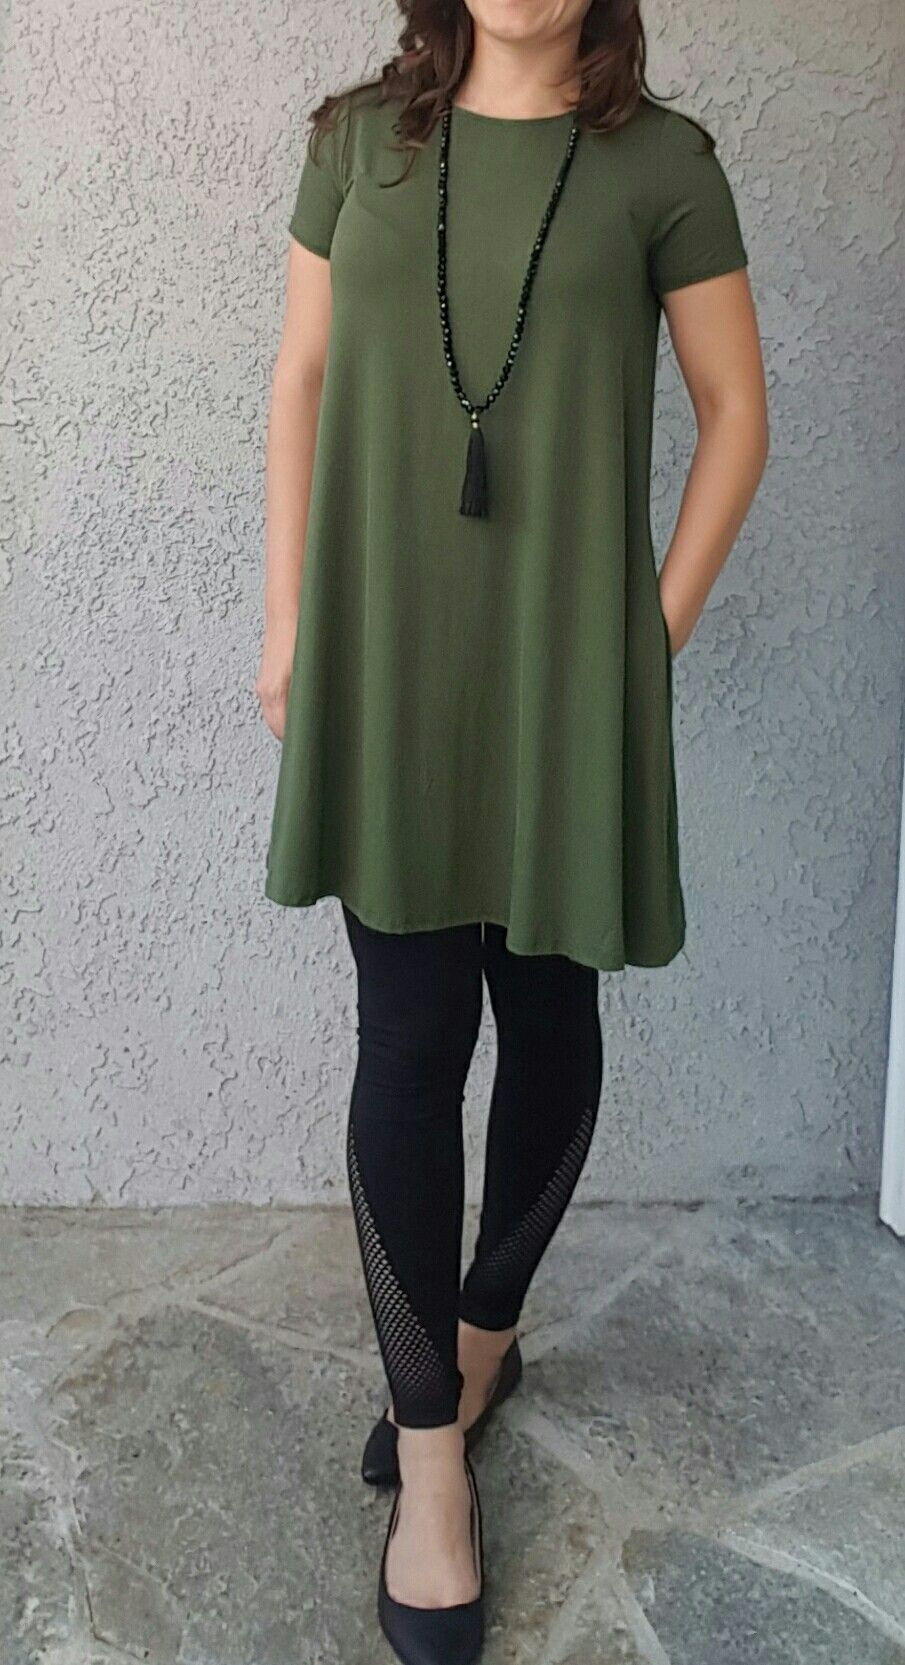 d9a216ac412 olive tunic by Agnes and Dora with black leggings from Target #ootd  www.maycloth.com